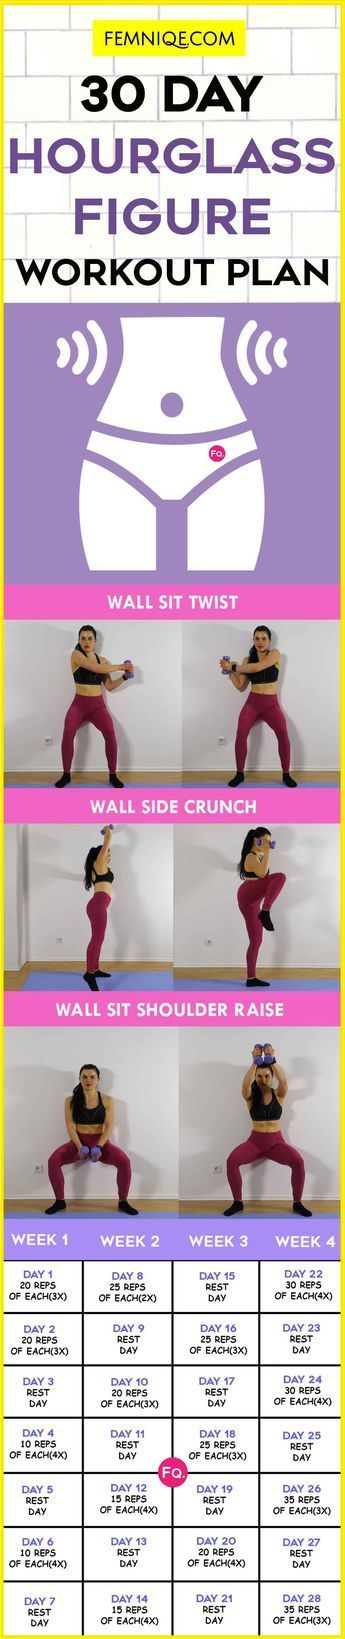 HOURGLASS FIGURE WORKOUT PLAN